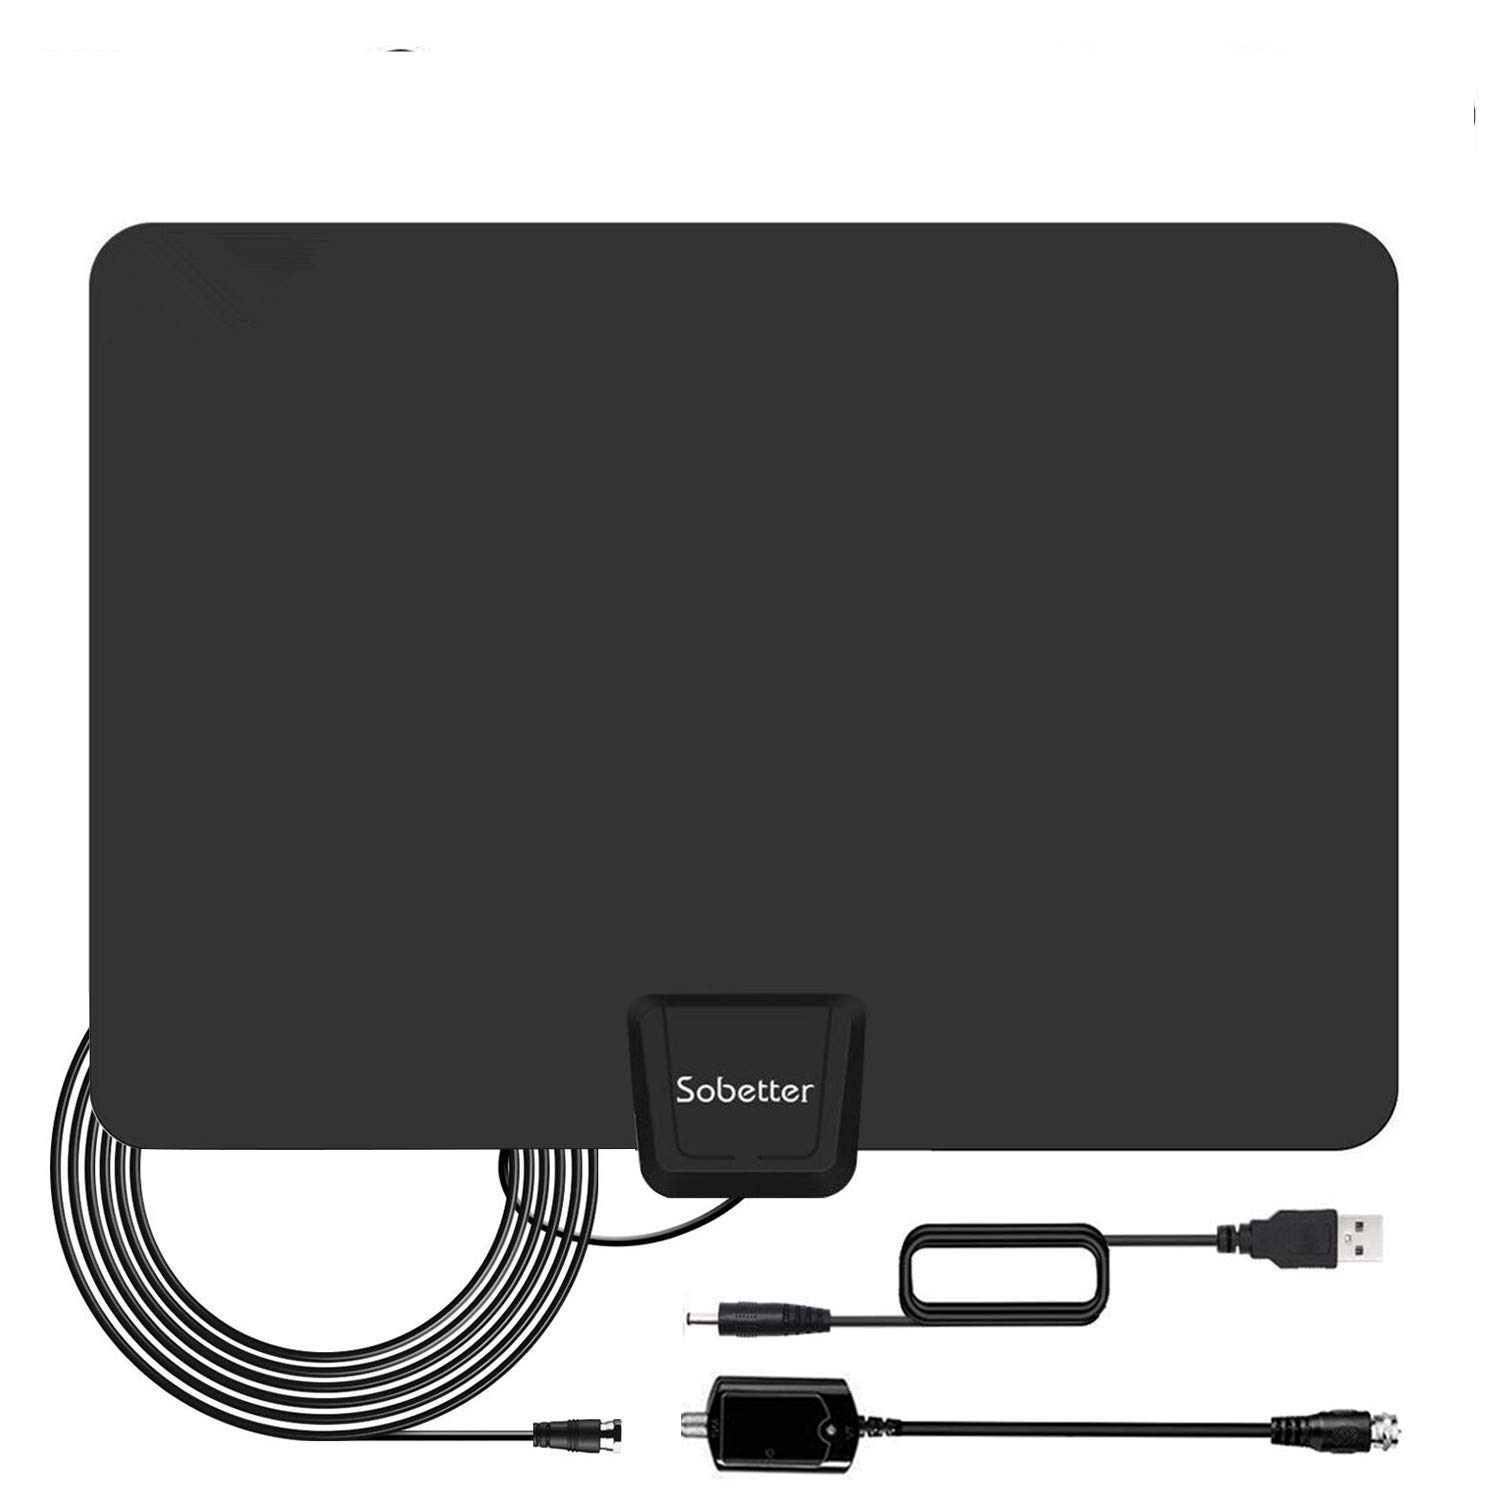 HDTV Antenna - Digital HD TV Antenna 60-90Miles Range Compatible 4K 1080P Free TV Channels Powerful Detachable Amplifier Signal Booster,Longer Coax Cable